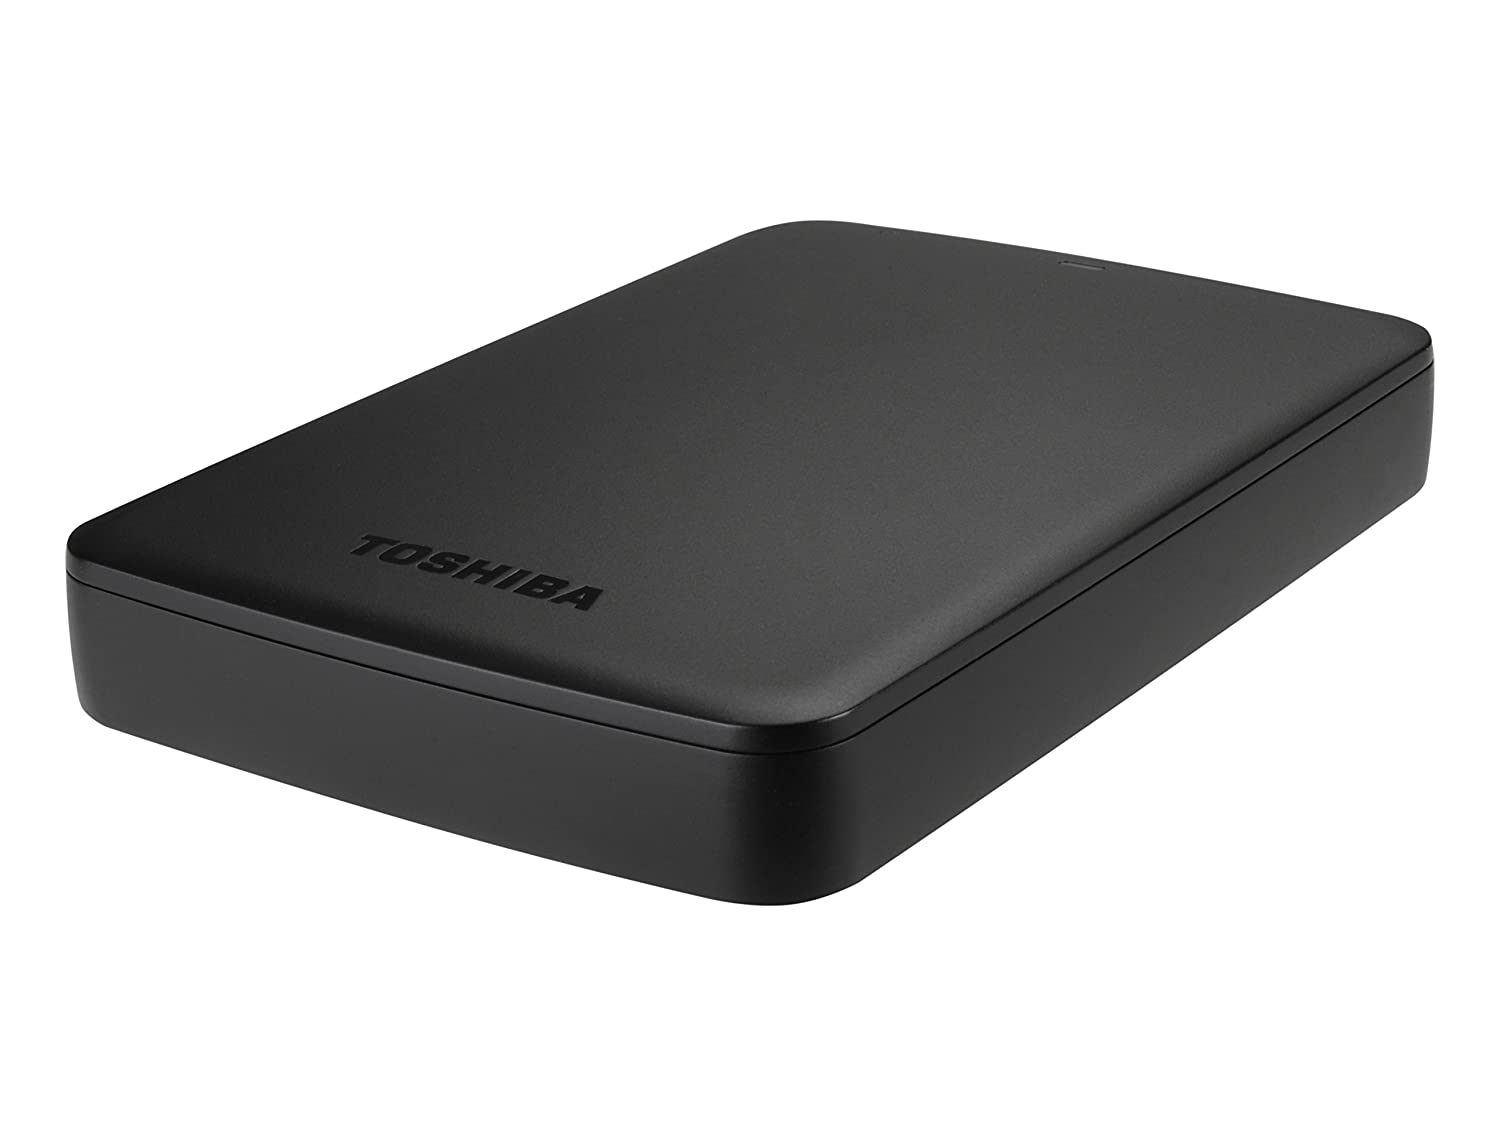 10 Of The Best Storage Devices